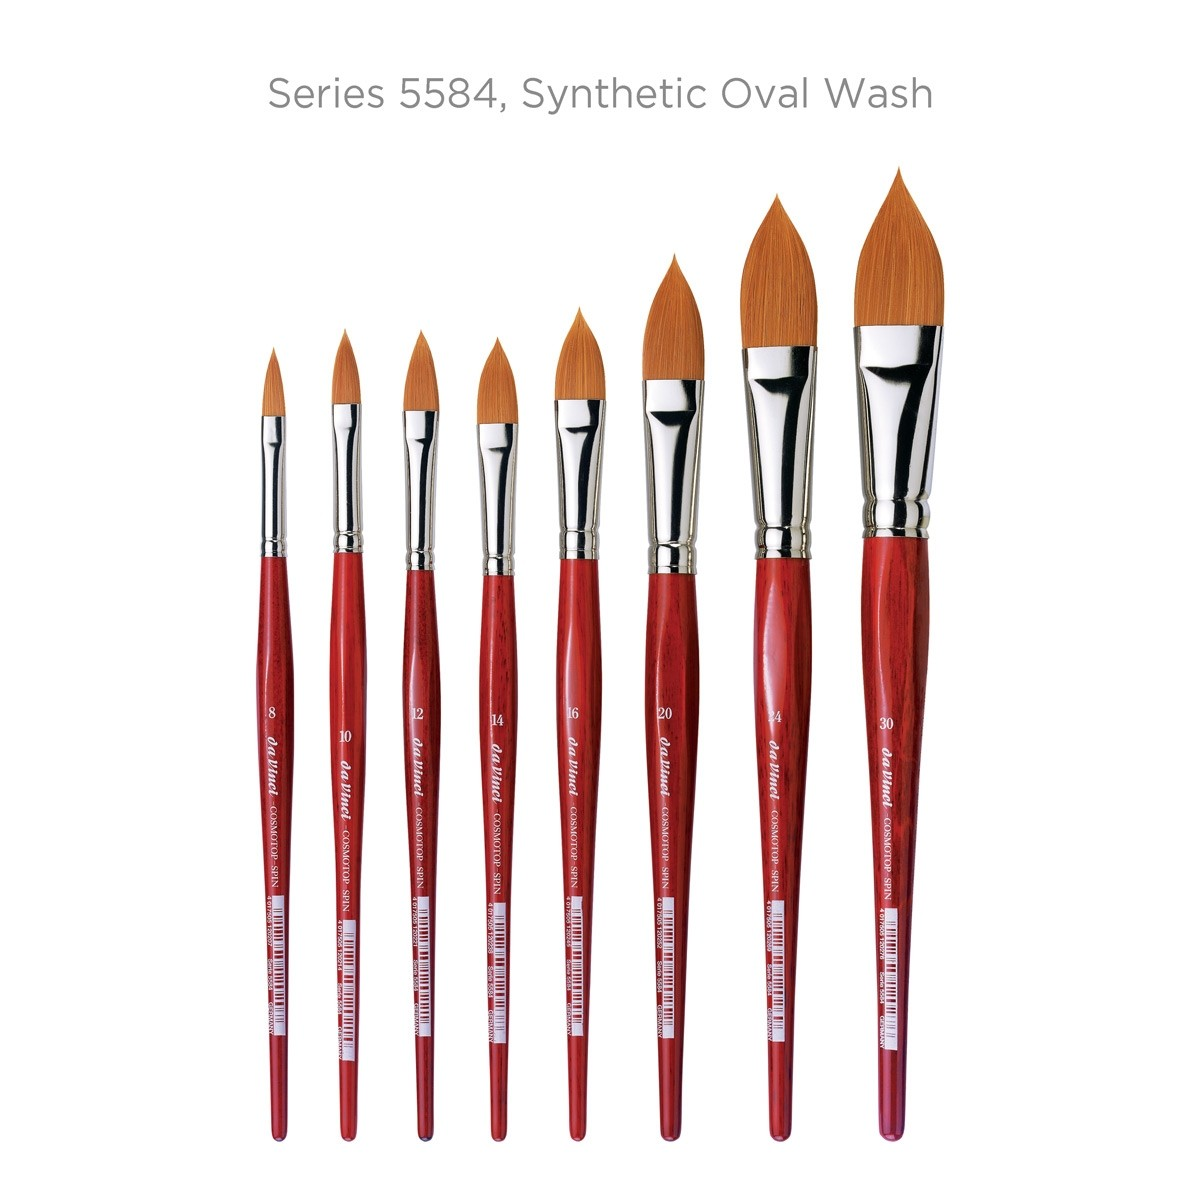 Flat Synthetic with Red Handle 5880-02 Size 2 da Vinci Watercolor Series 5880 CosmoTop Spin Paint Brush